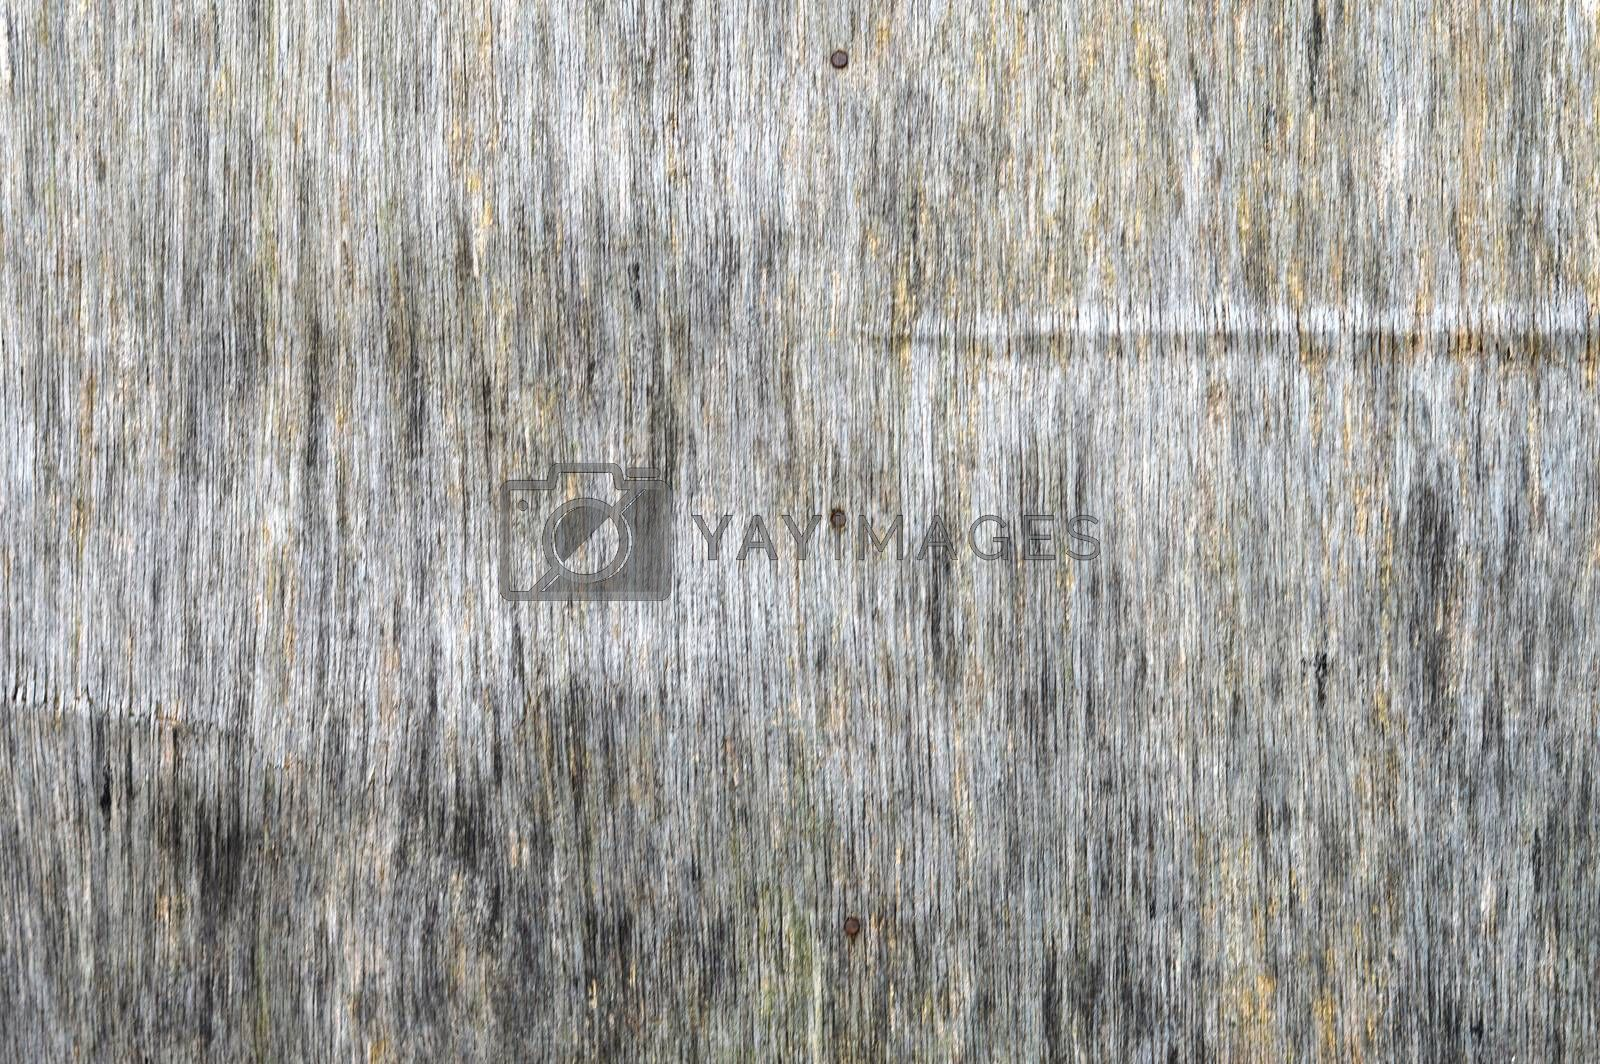 detailed textureand pattern wooden board background